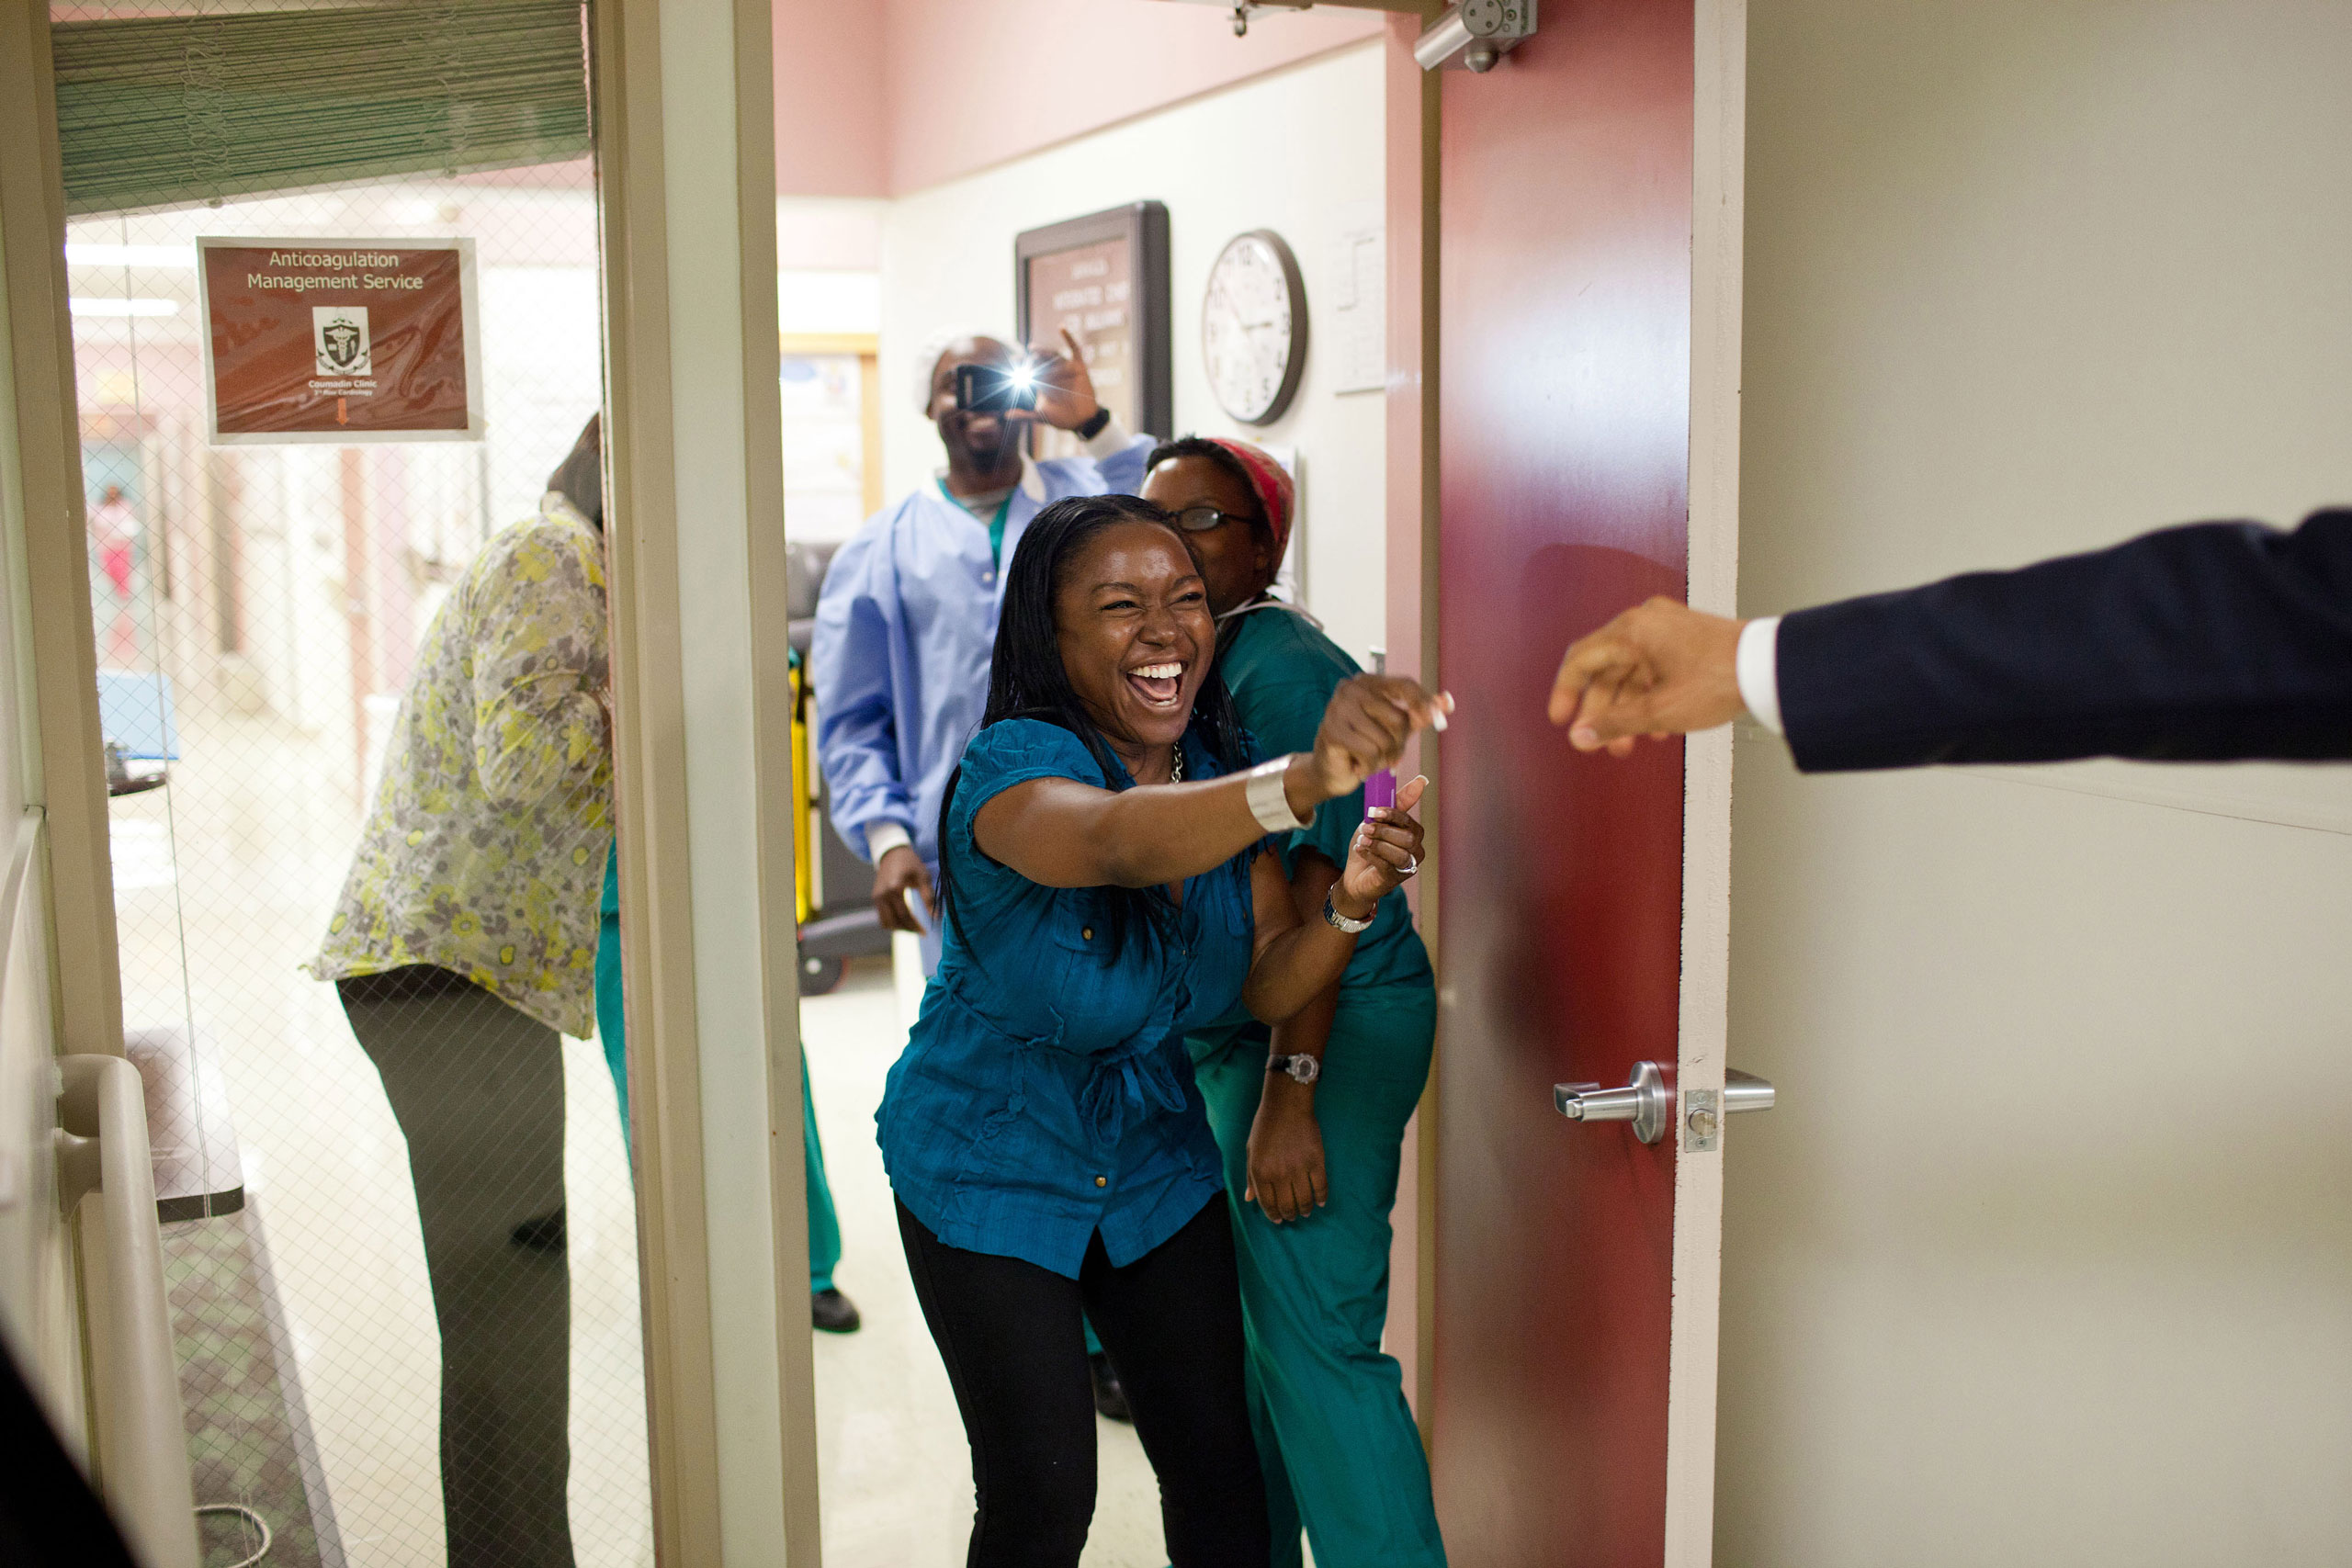 President Barack Obama greets hospital workers while visiting wounded service members at Walter Reed Army Medical Center in Washington, D.C., June 17, 2011.